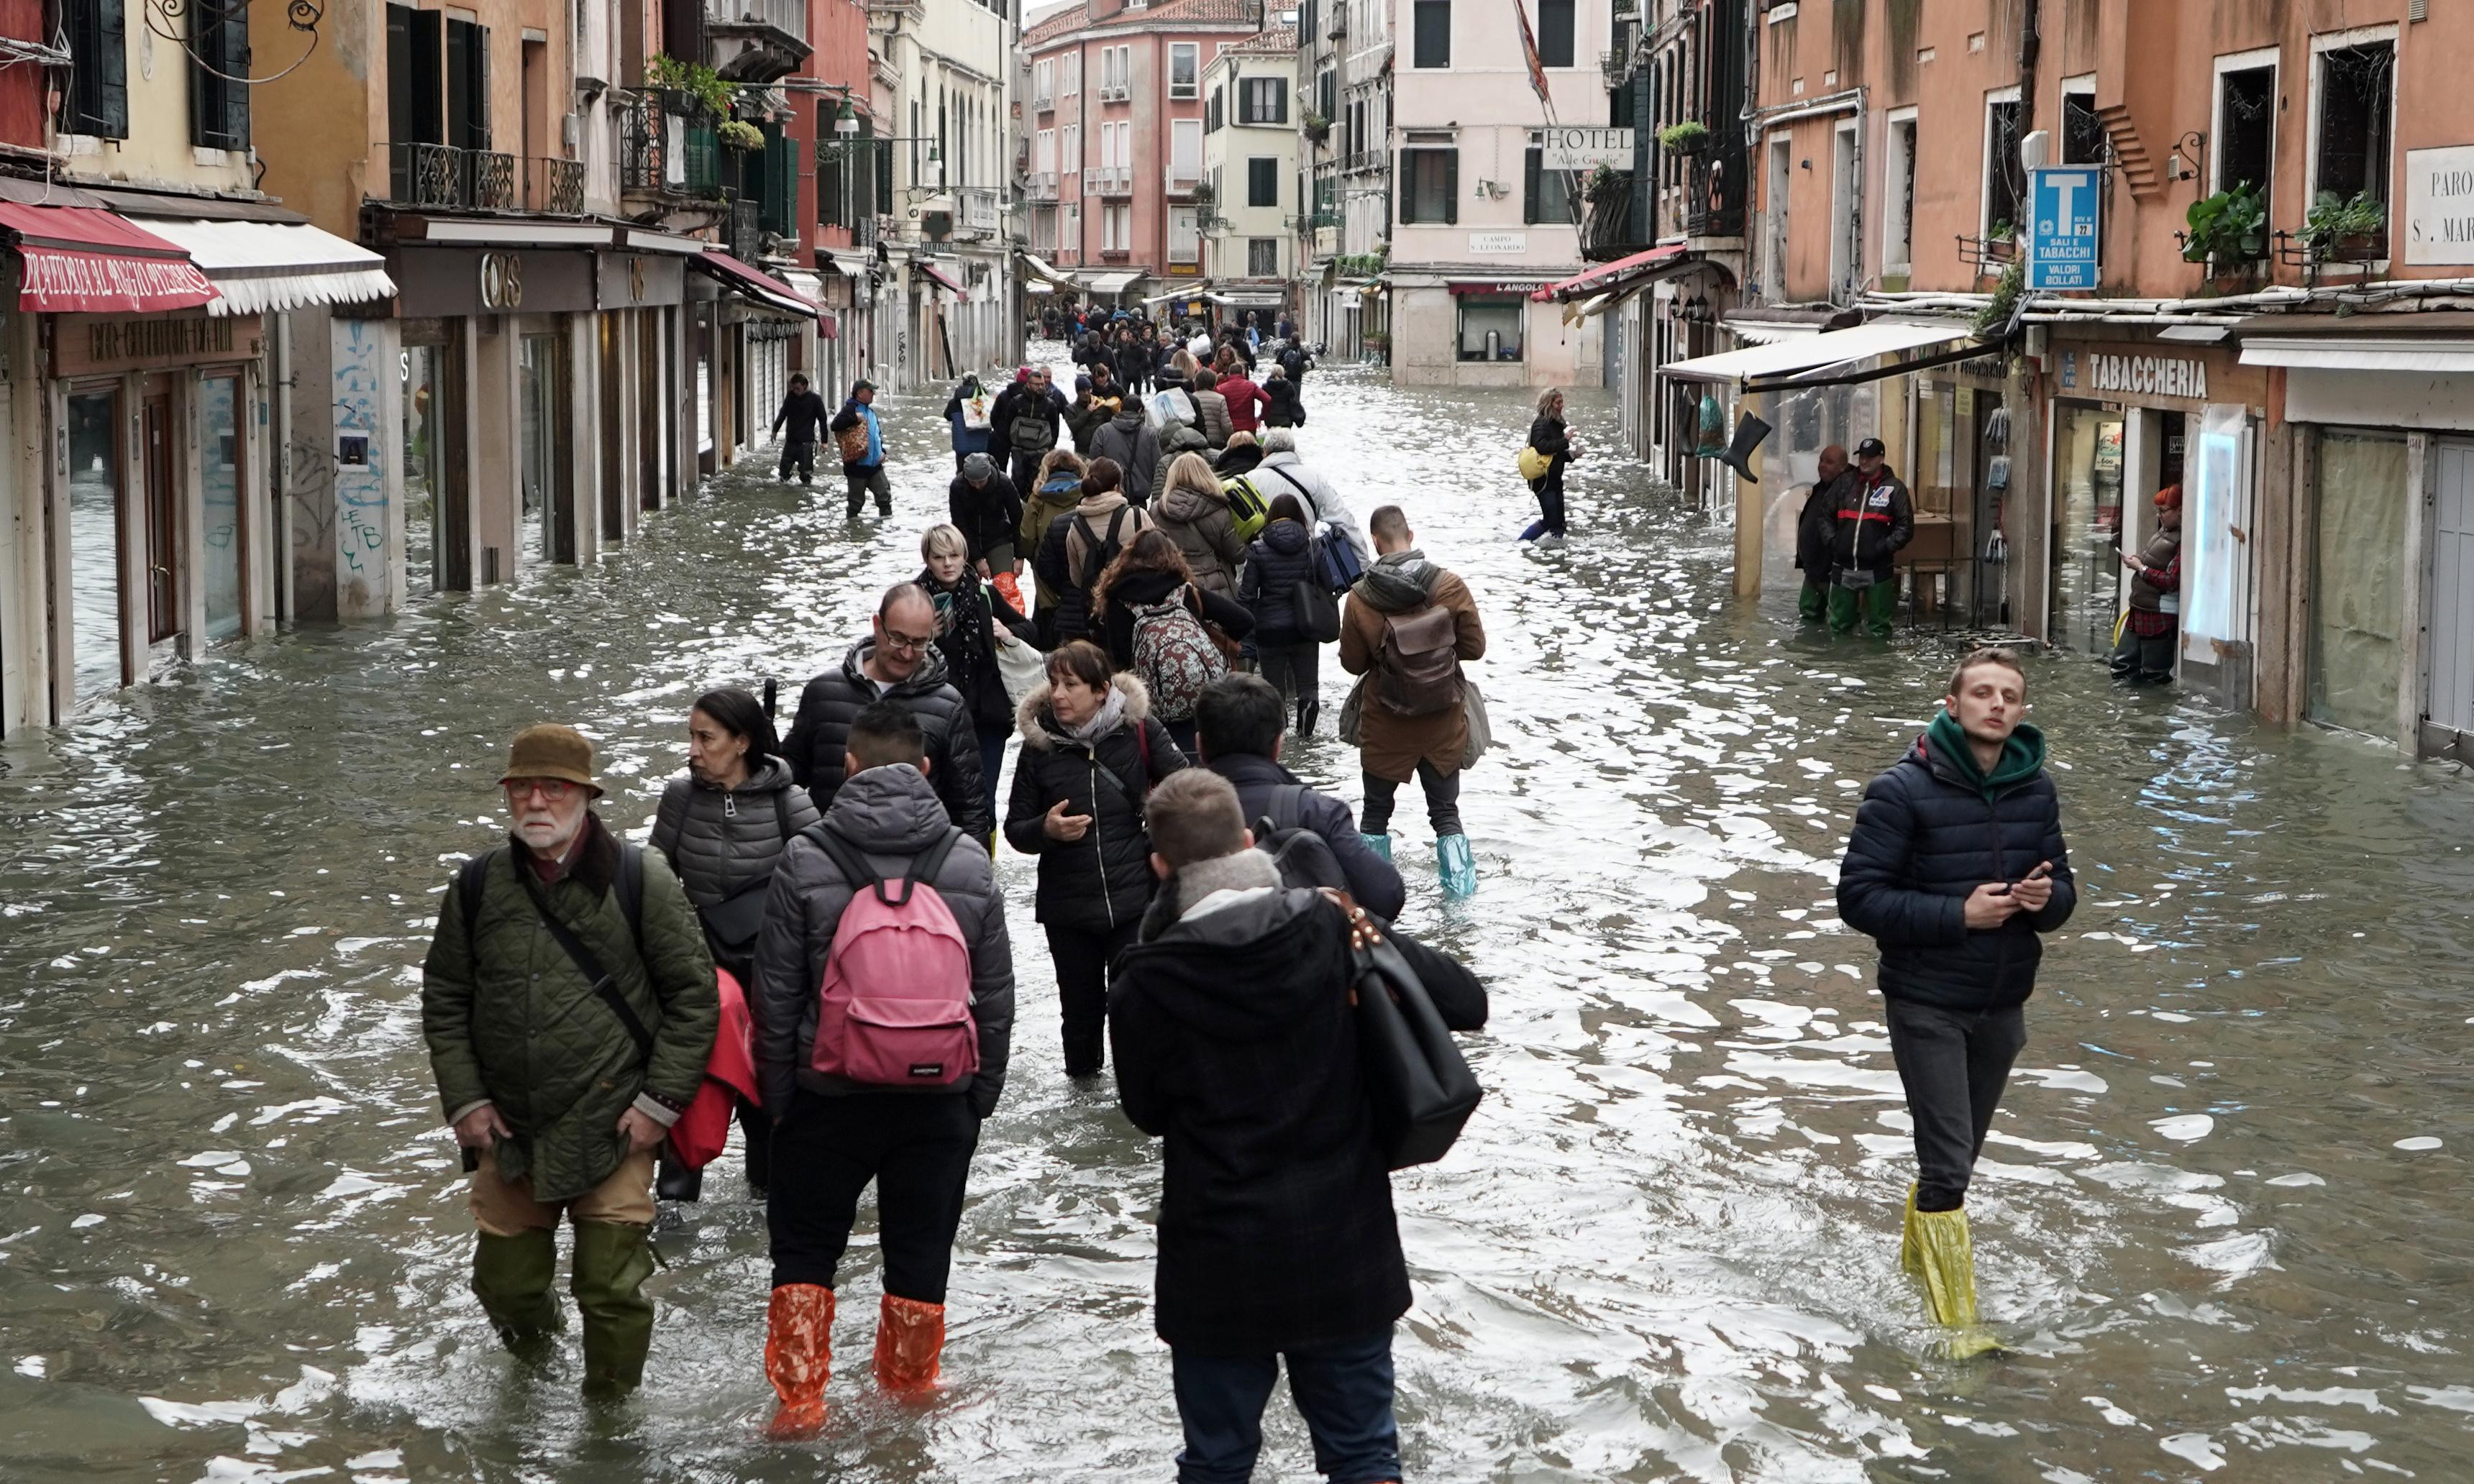 Venetians call for help as 'pride of Italy' deals with flood damage